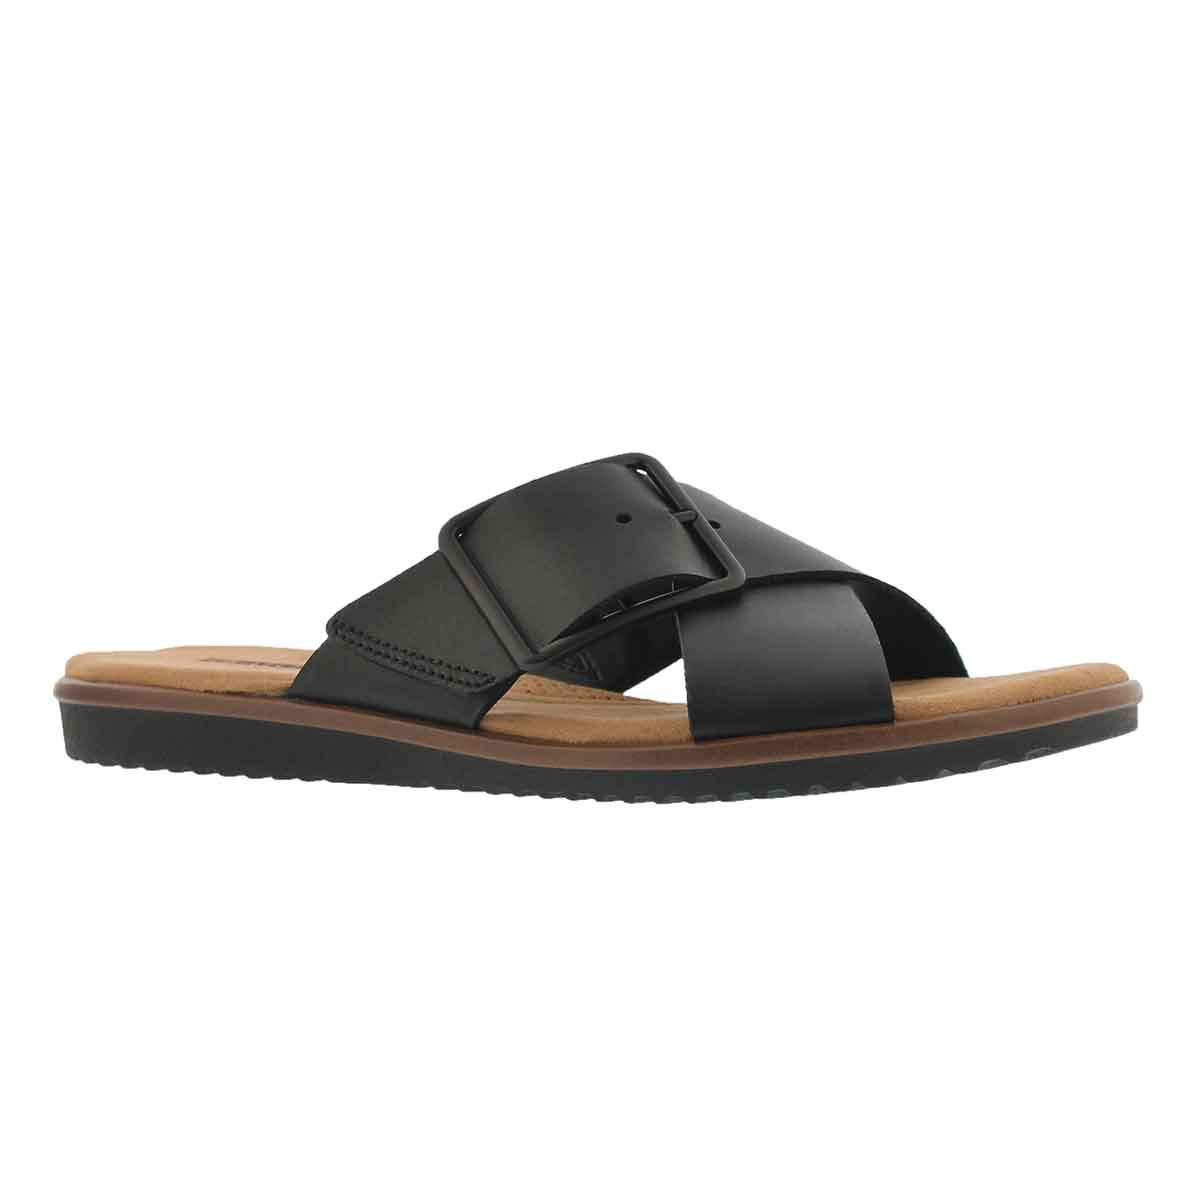 Women's KELE HEATHER black casual slide sandal